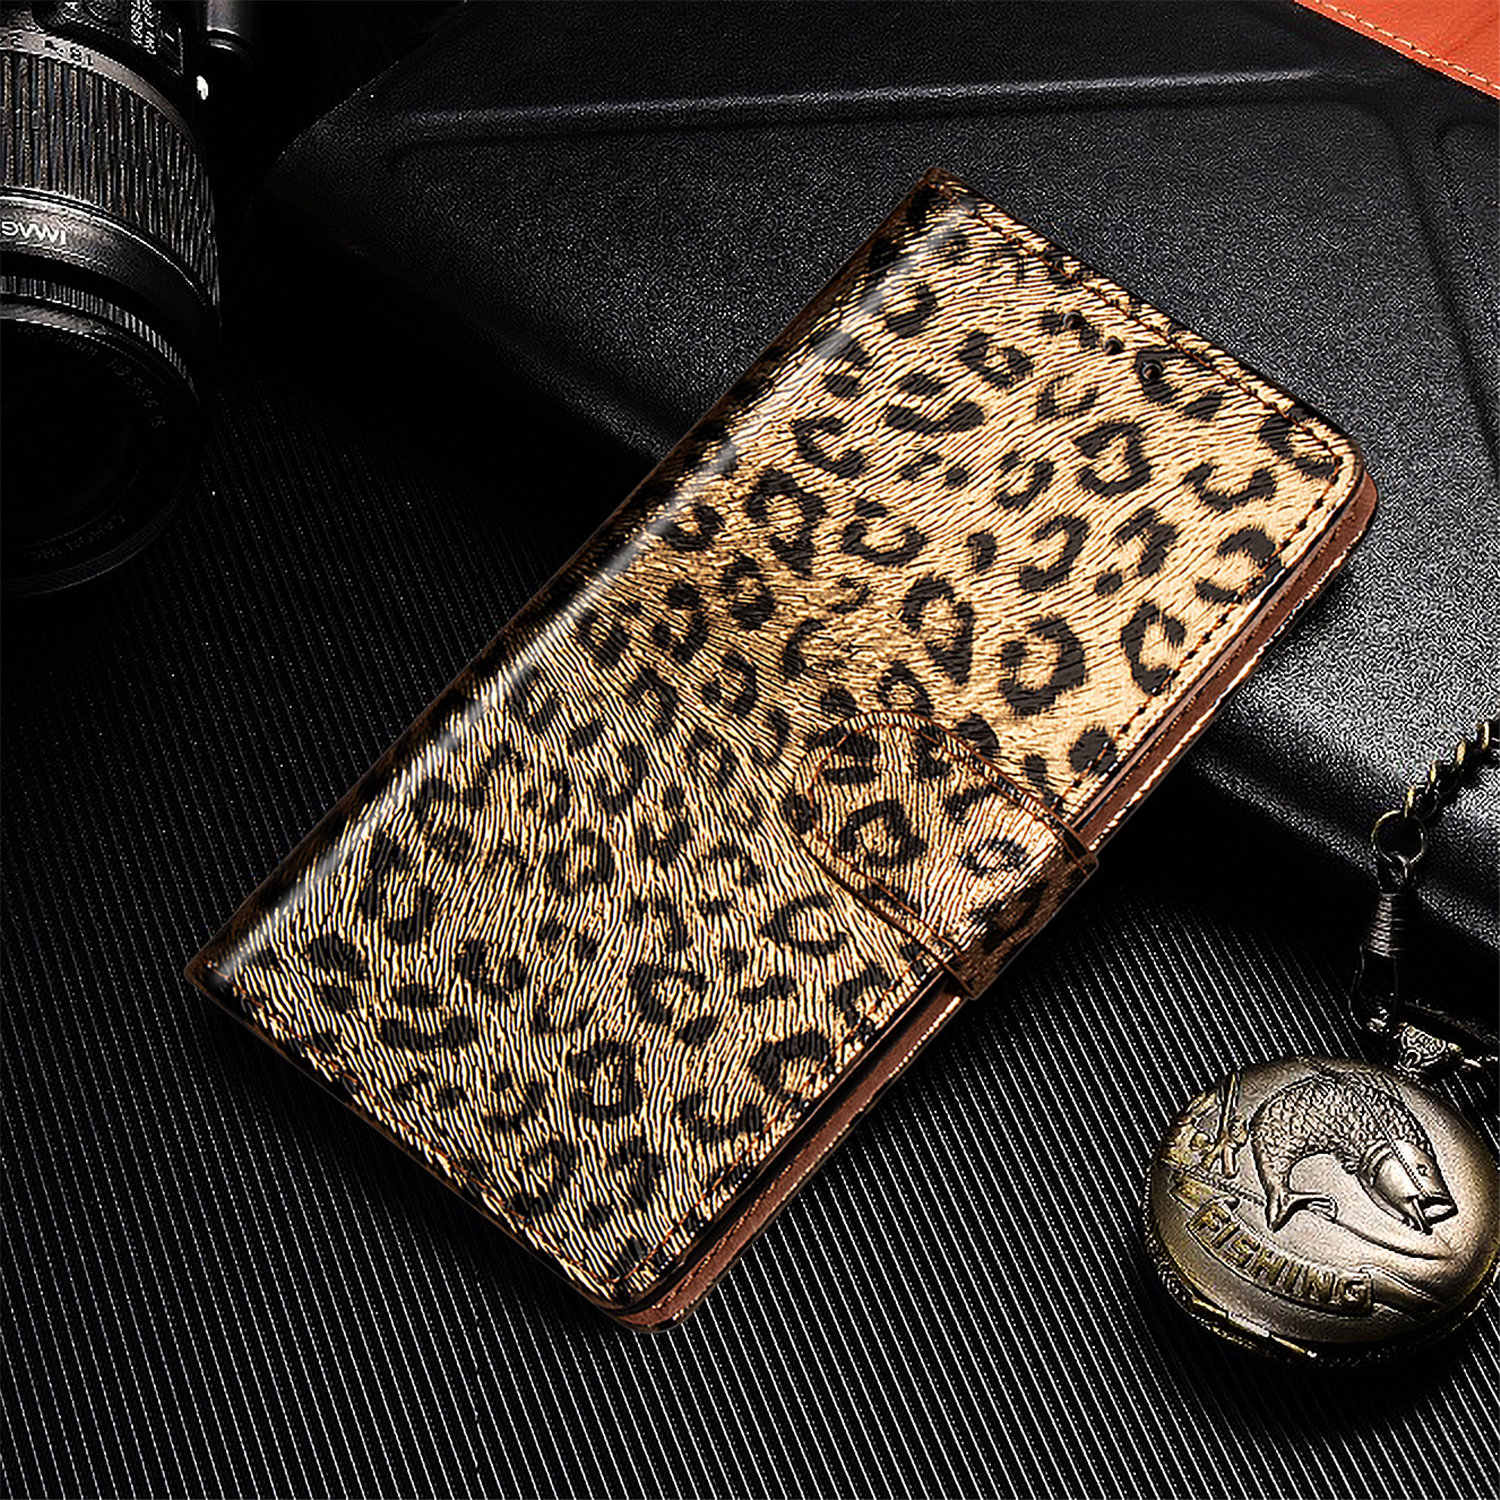 Leather Case For Apple iPhone 11 7 8 6 6s Plus Pro XR XS Max X Leopard Fur Wallet Flip Book Case Cover on For iPhone 11 Pro Max